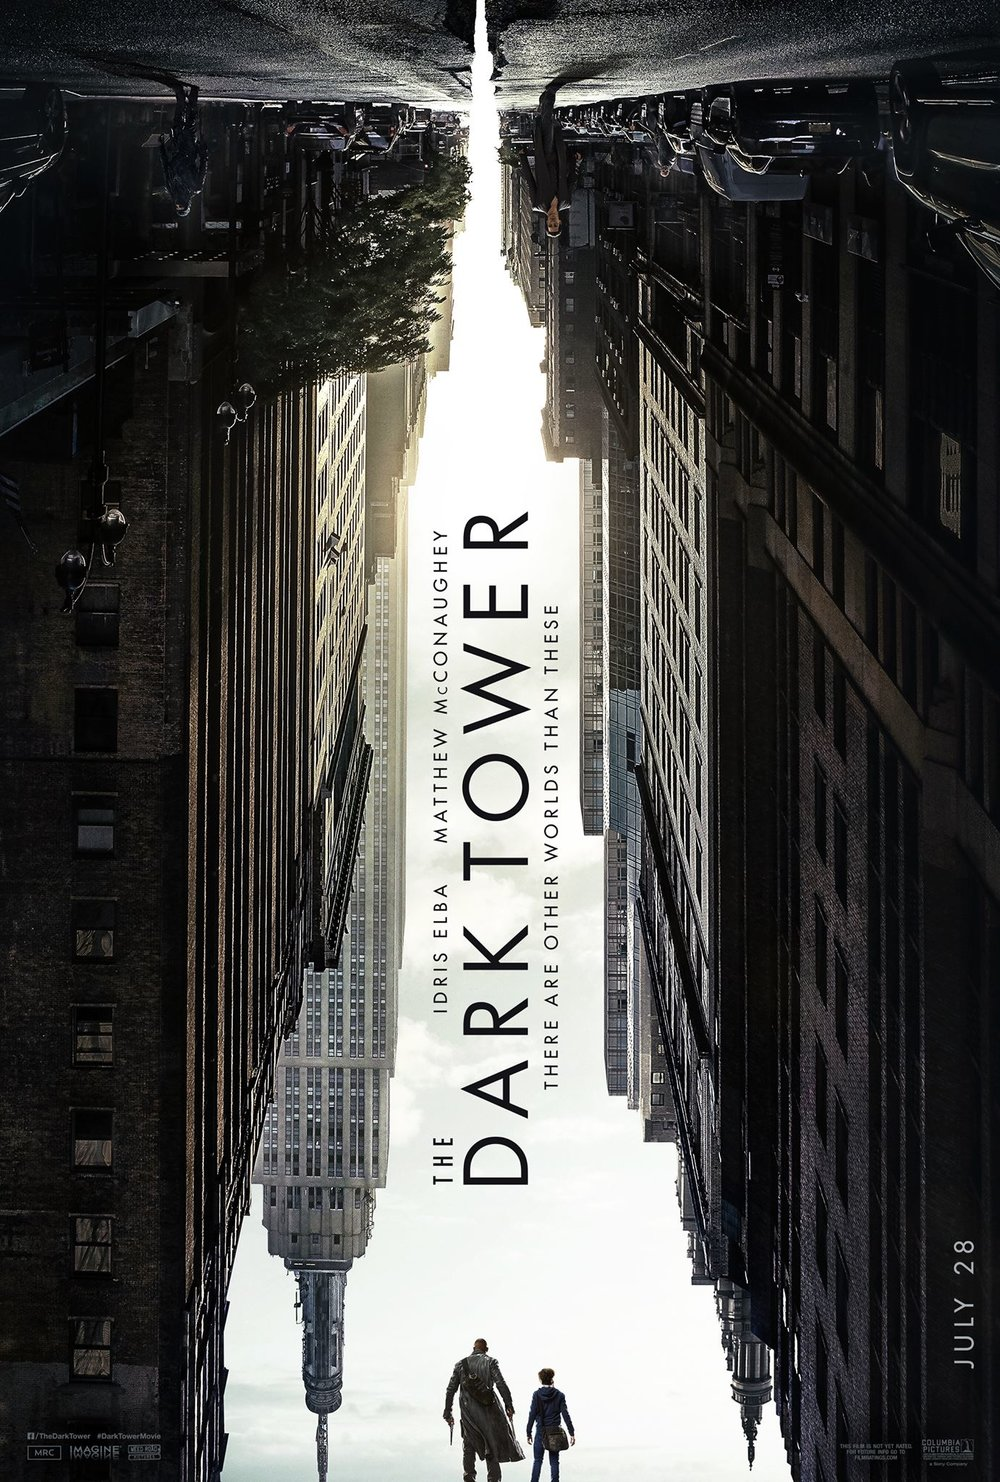 Stephen King Shares the First Movie Poster For THE DARK TOWER1